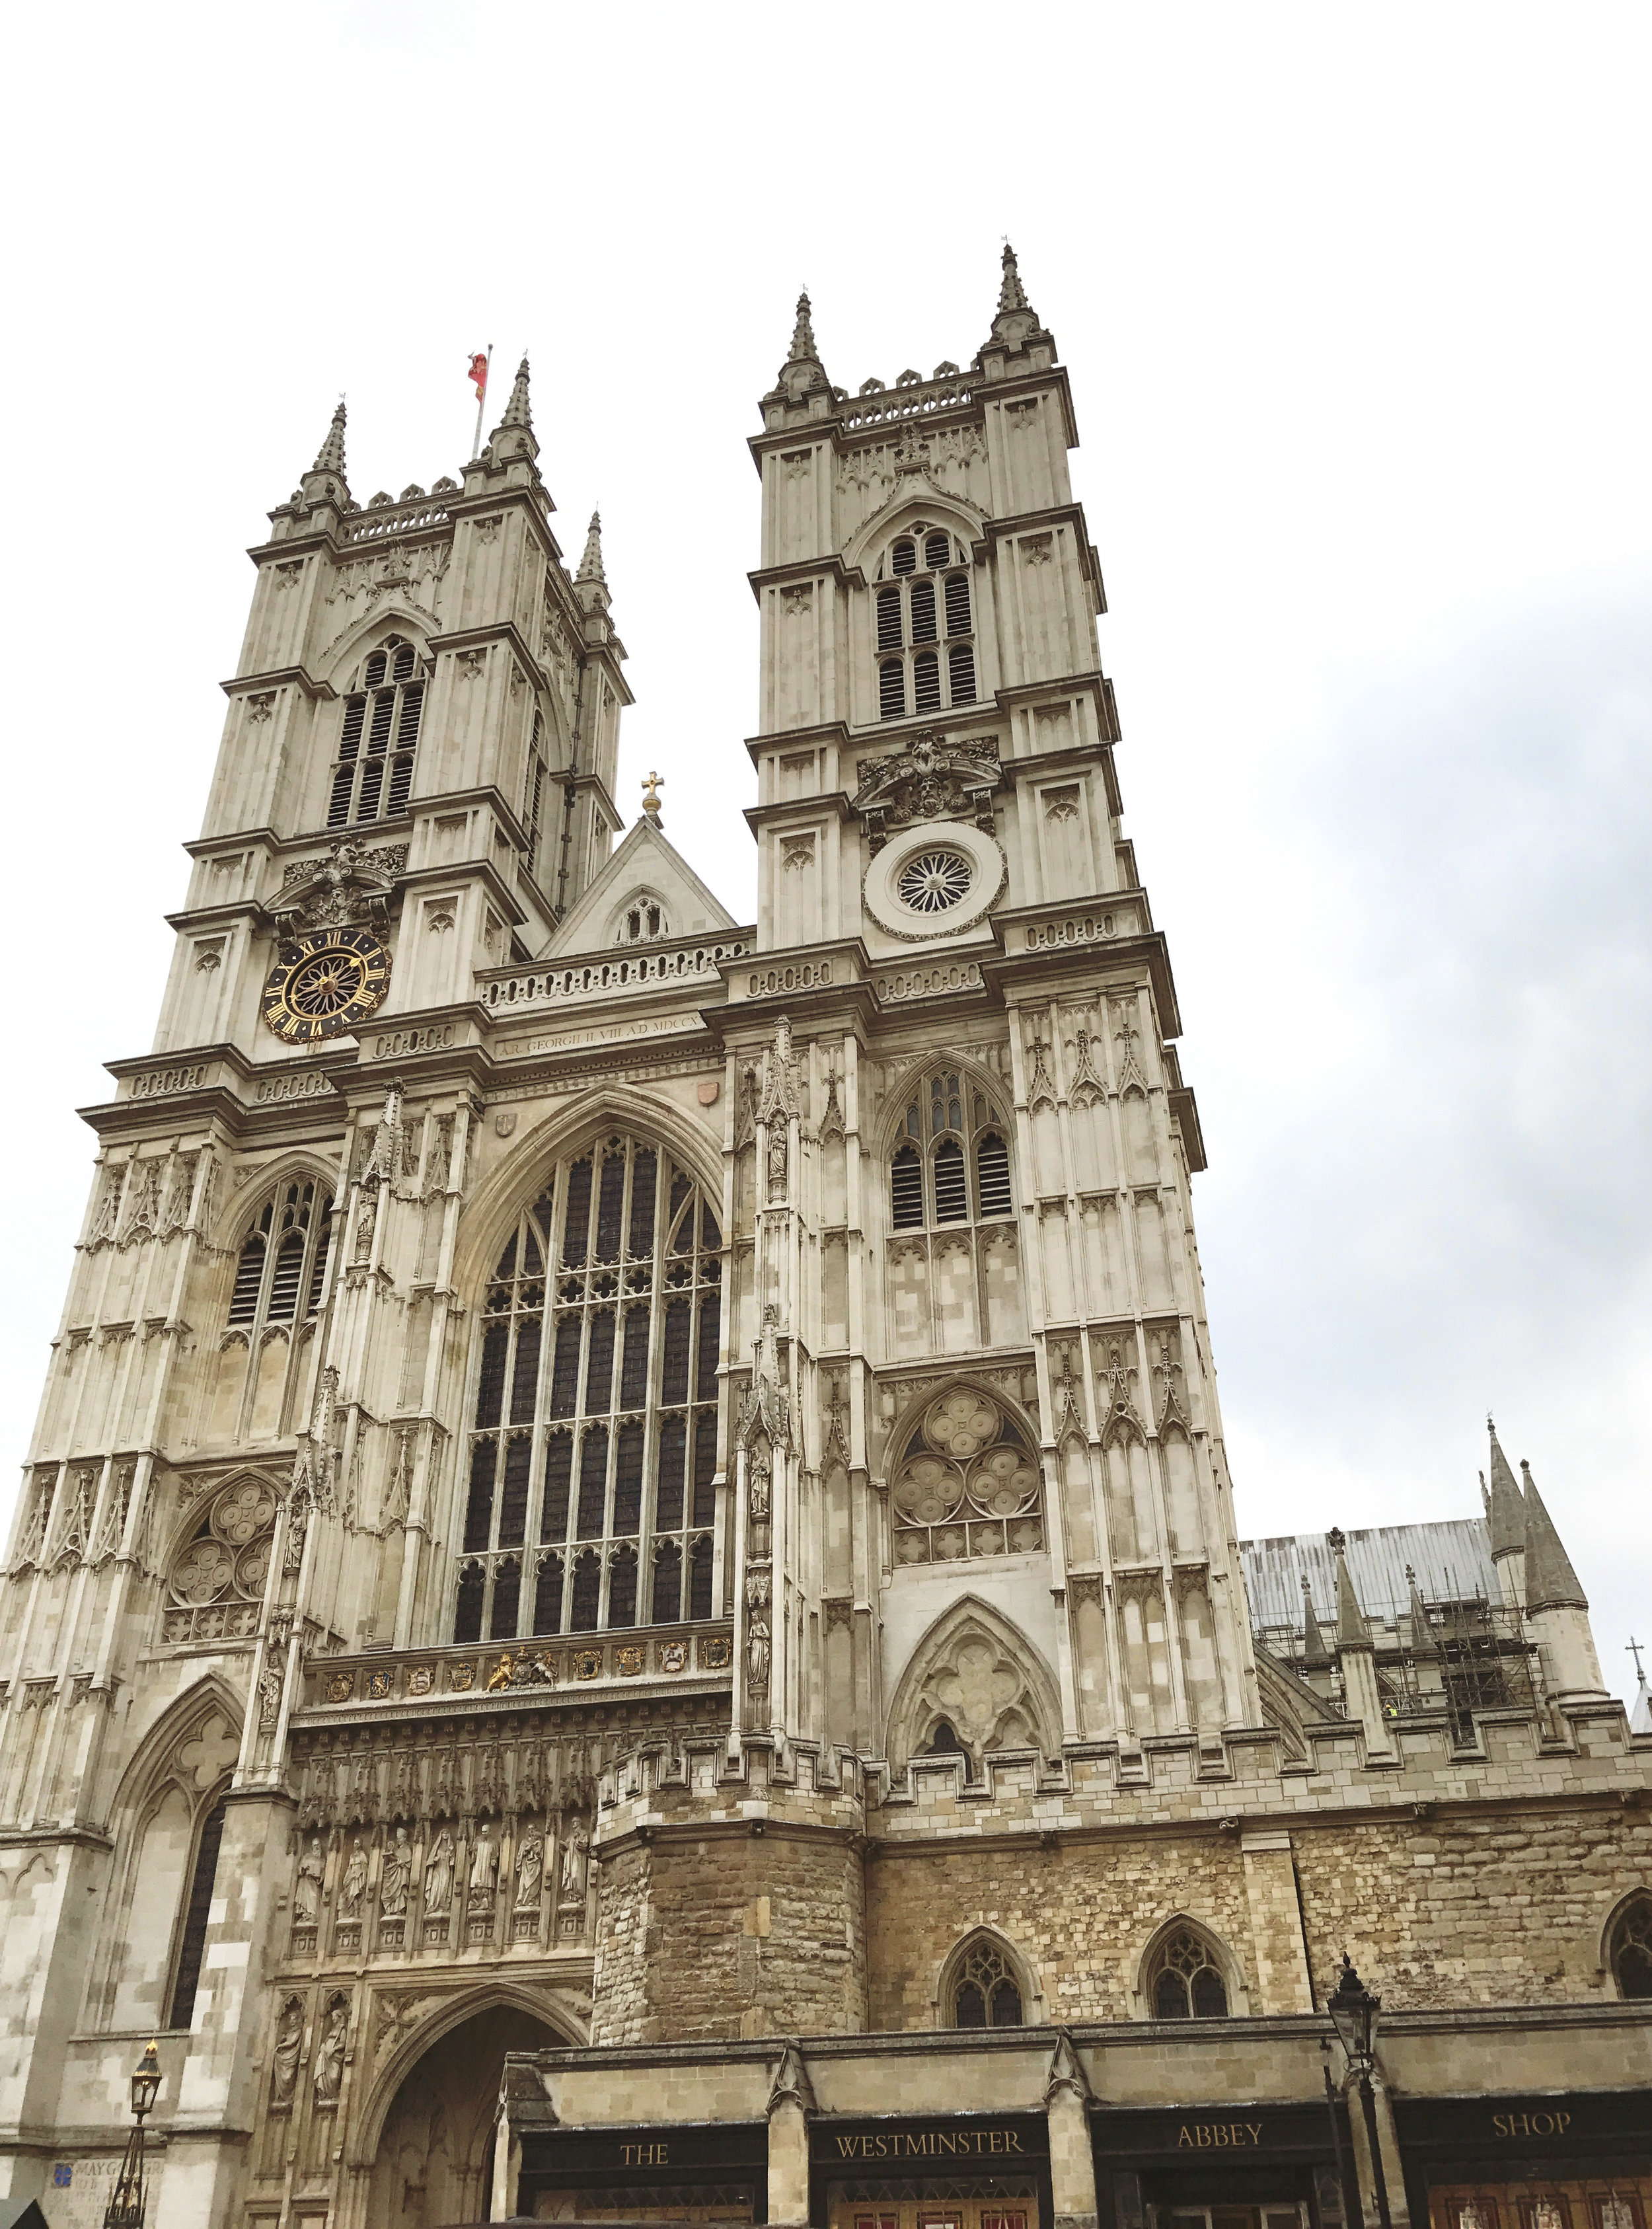 Westminster Abbey 2 in London - #Kurtantravels London Travel Guide Part 2 - BySarahRae.com